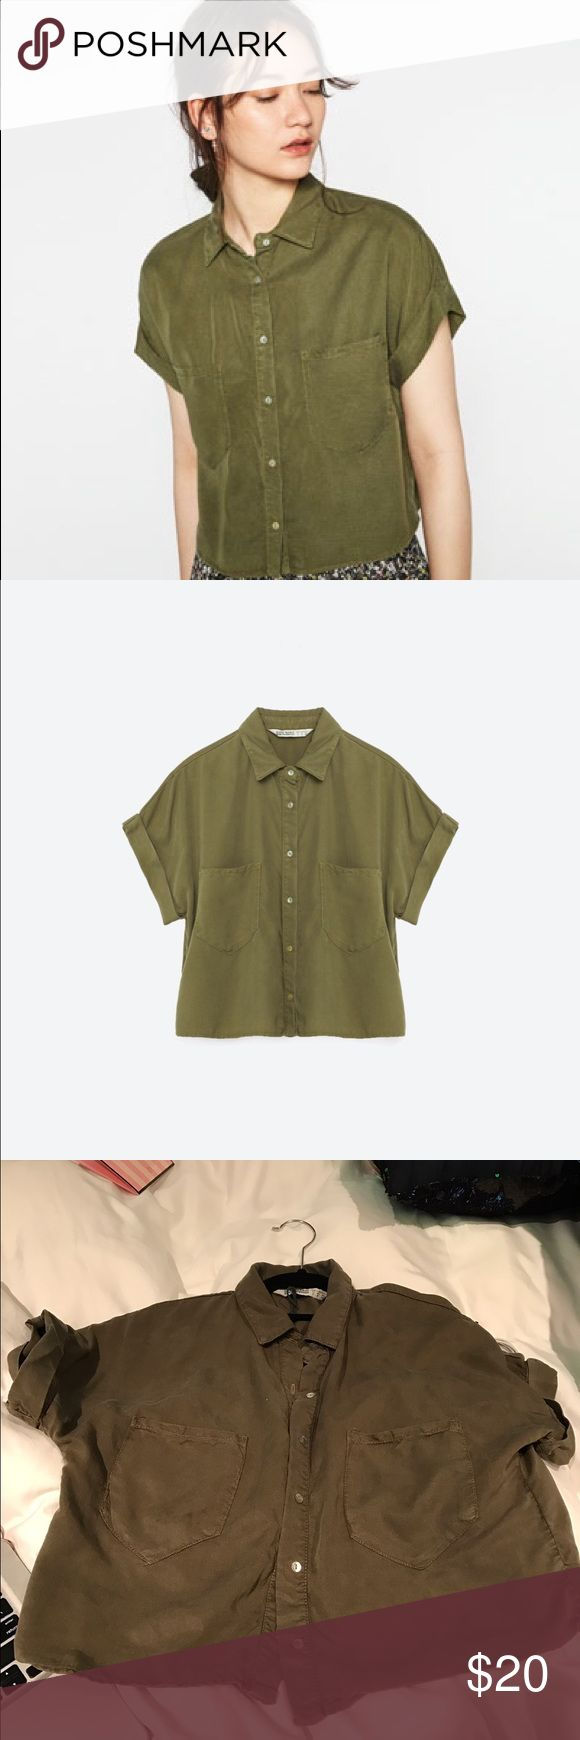 Zara Cropped Shirt 100% Lyocell Cropped shirt. Shirt is more fitted and shorter in length than appears on model (it fits fine however i noticed with me on it looks shorter and more feminine) offers Always welcome. No trades Zara Tops Crop Tops